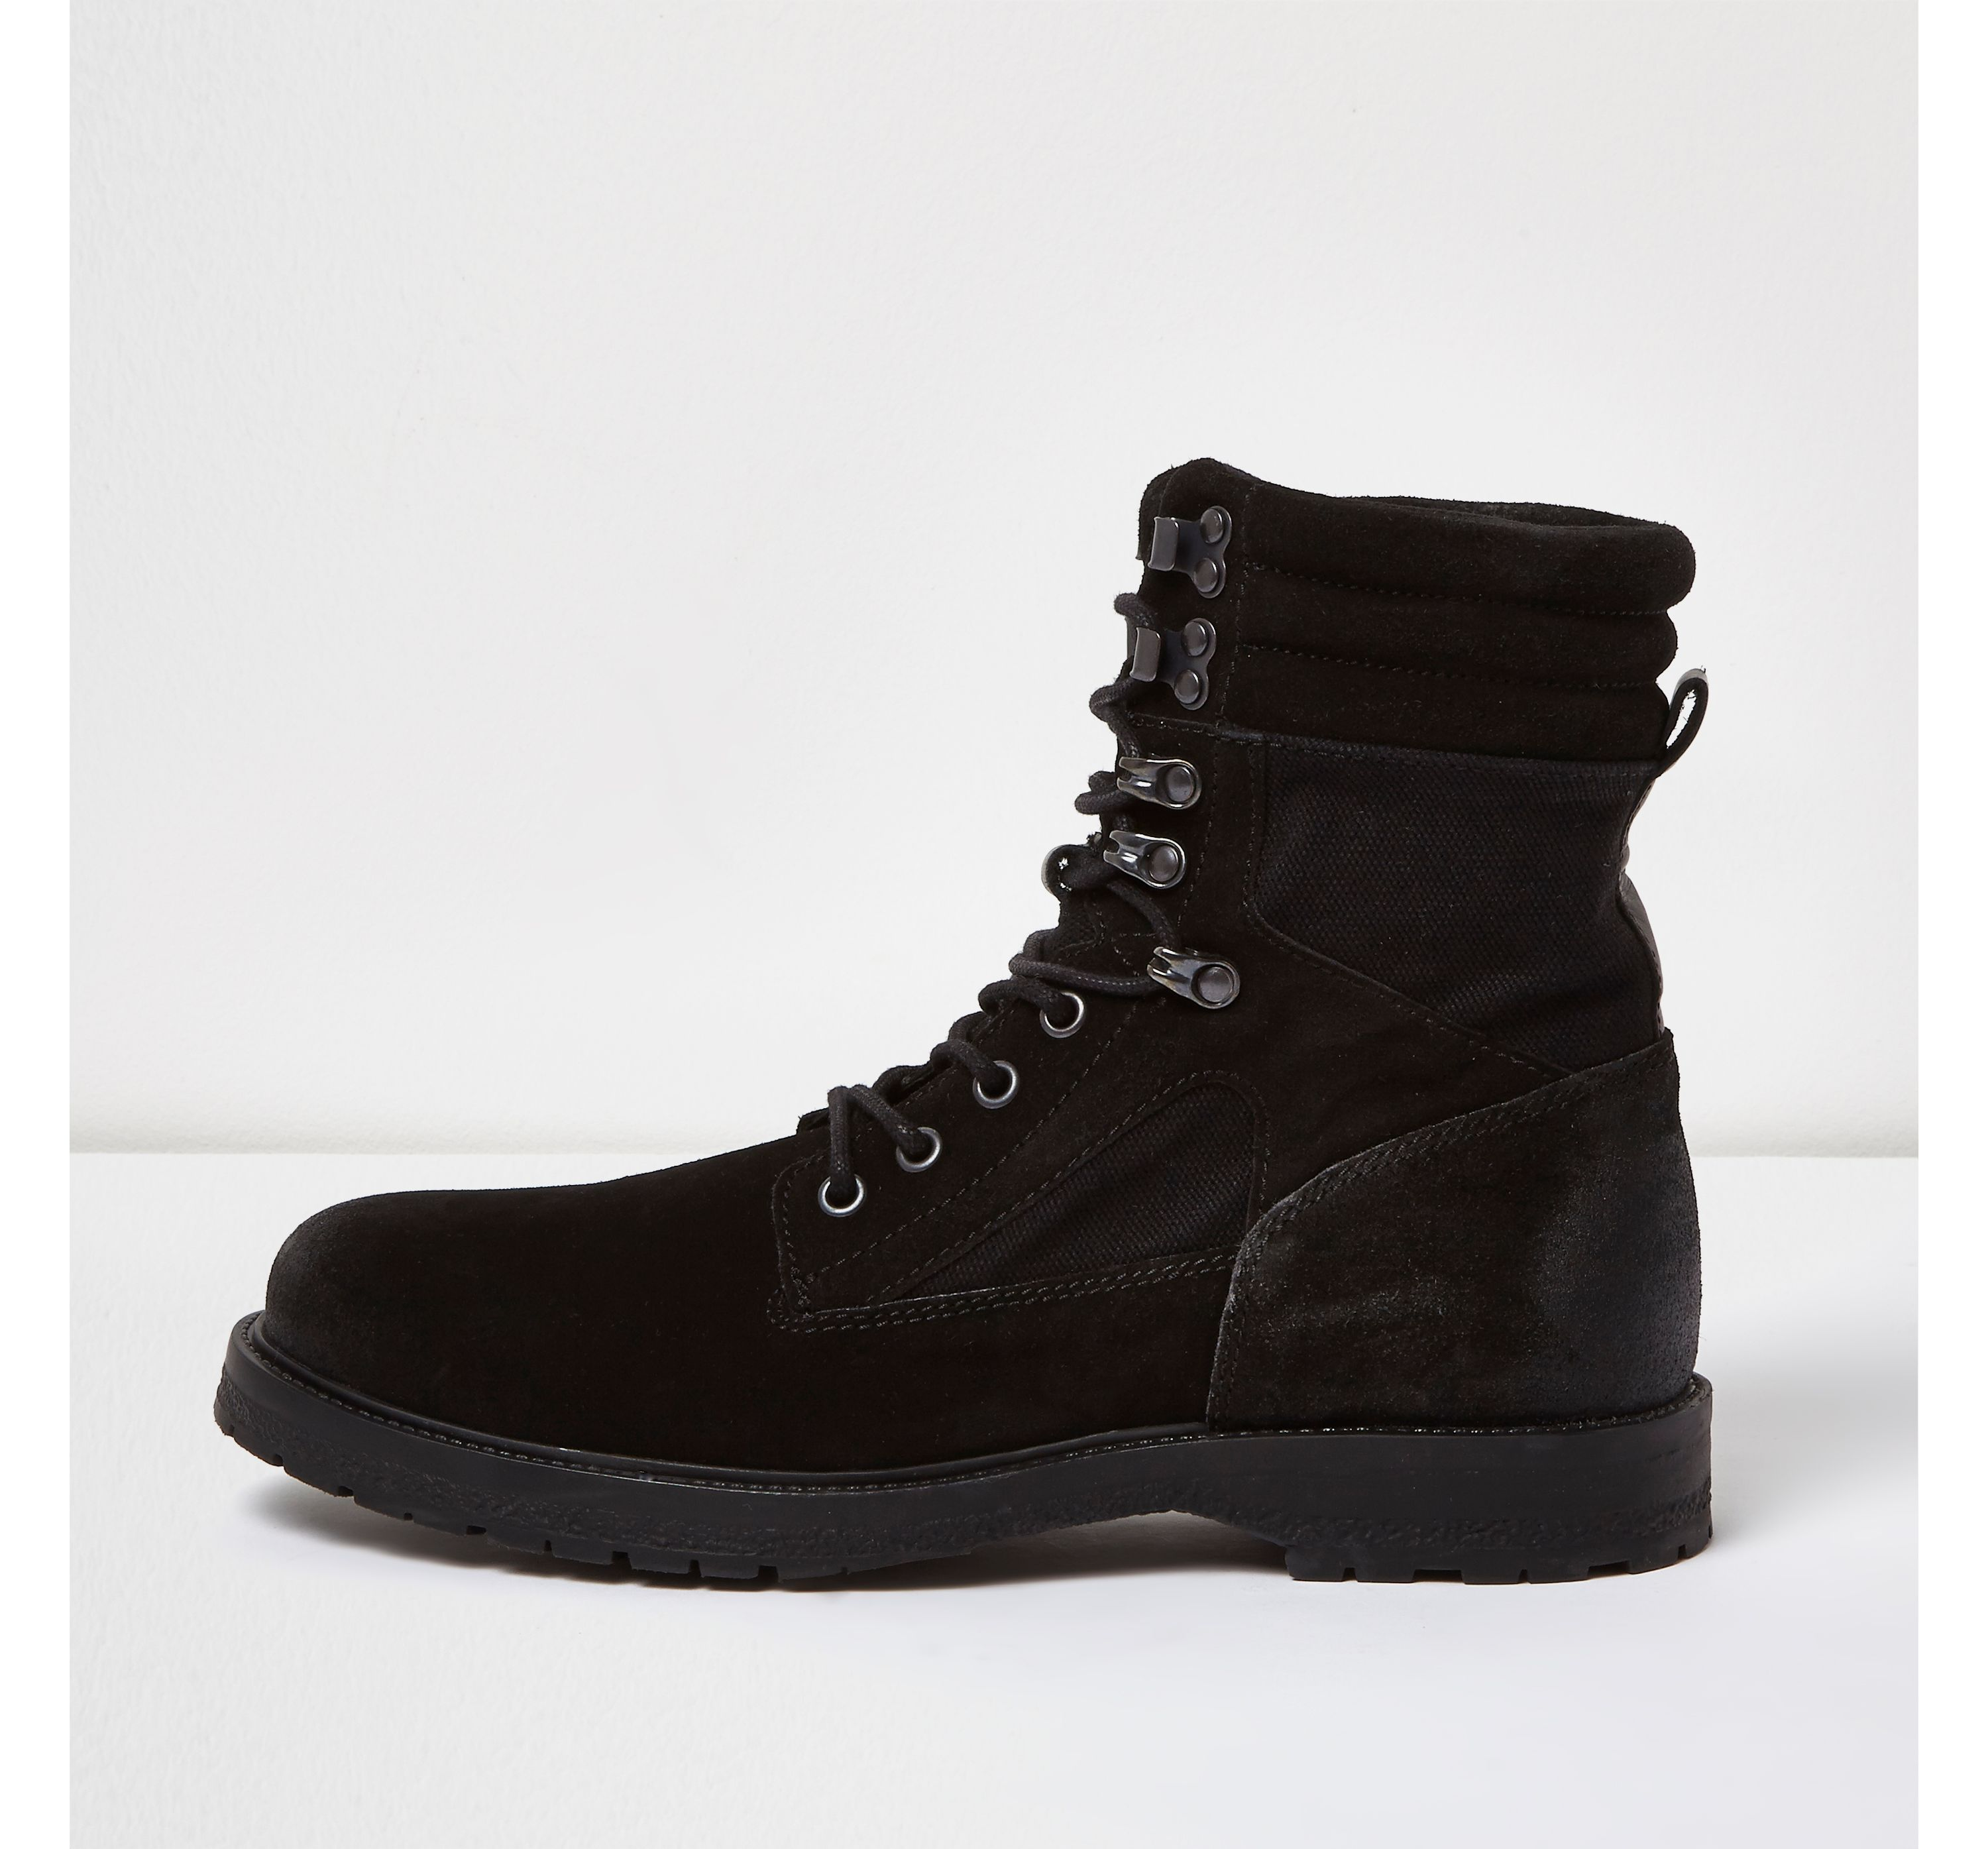 Mens Black suede combat boots by River